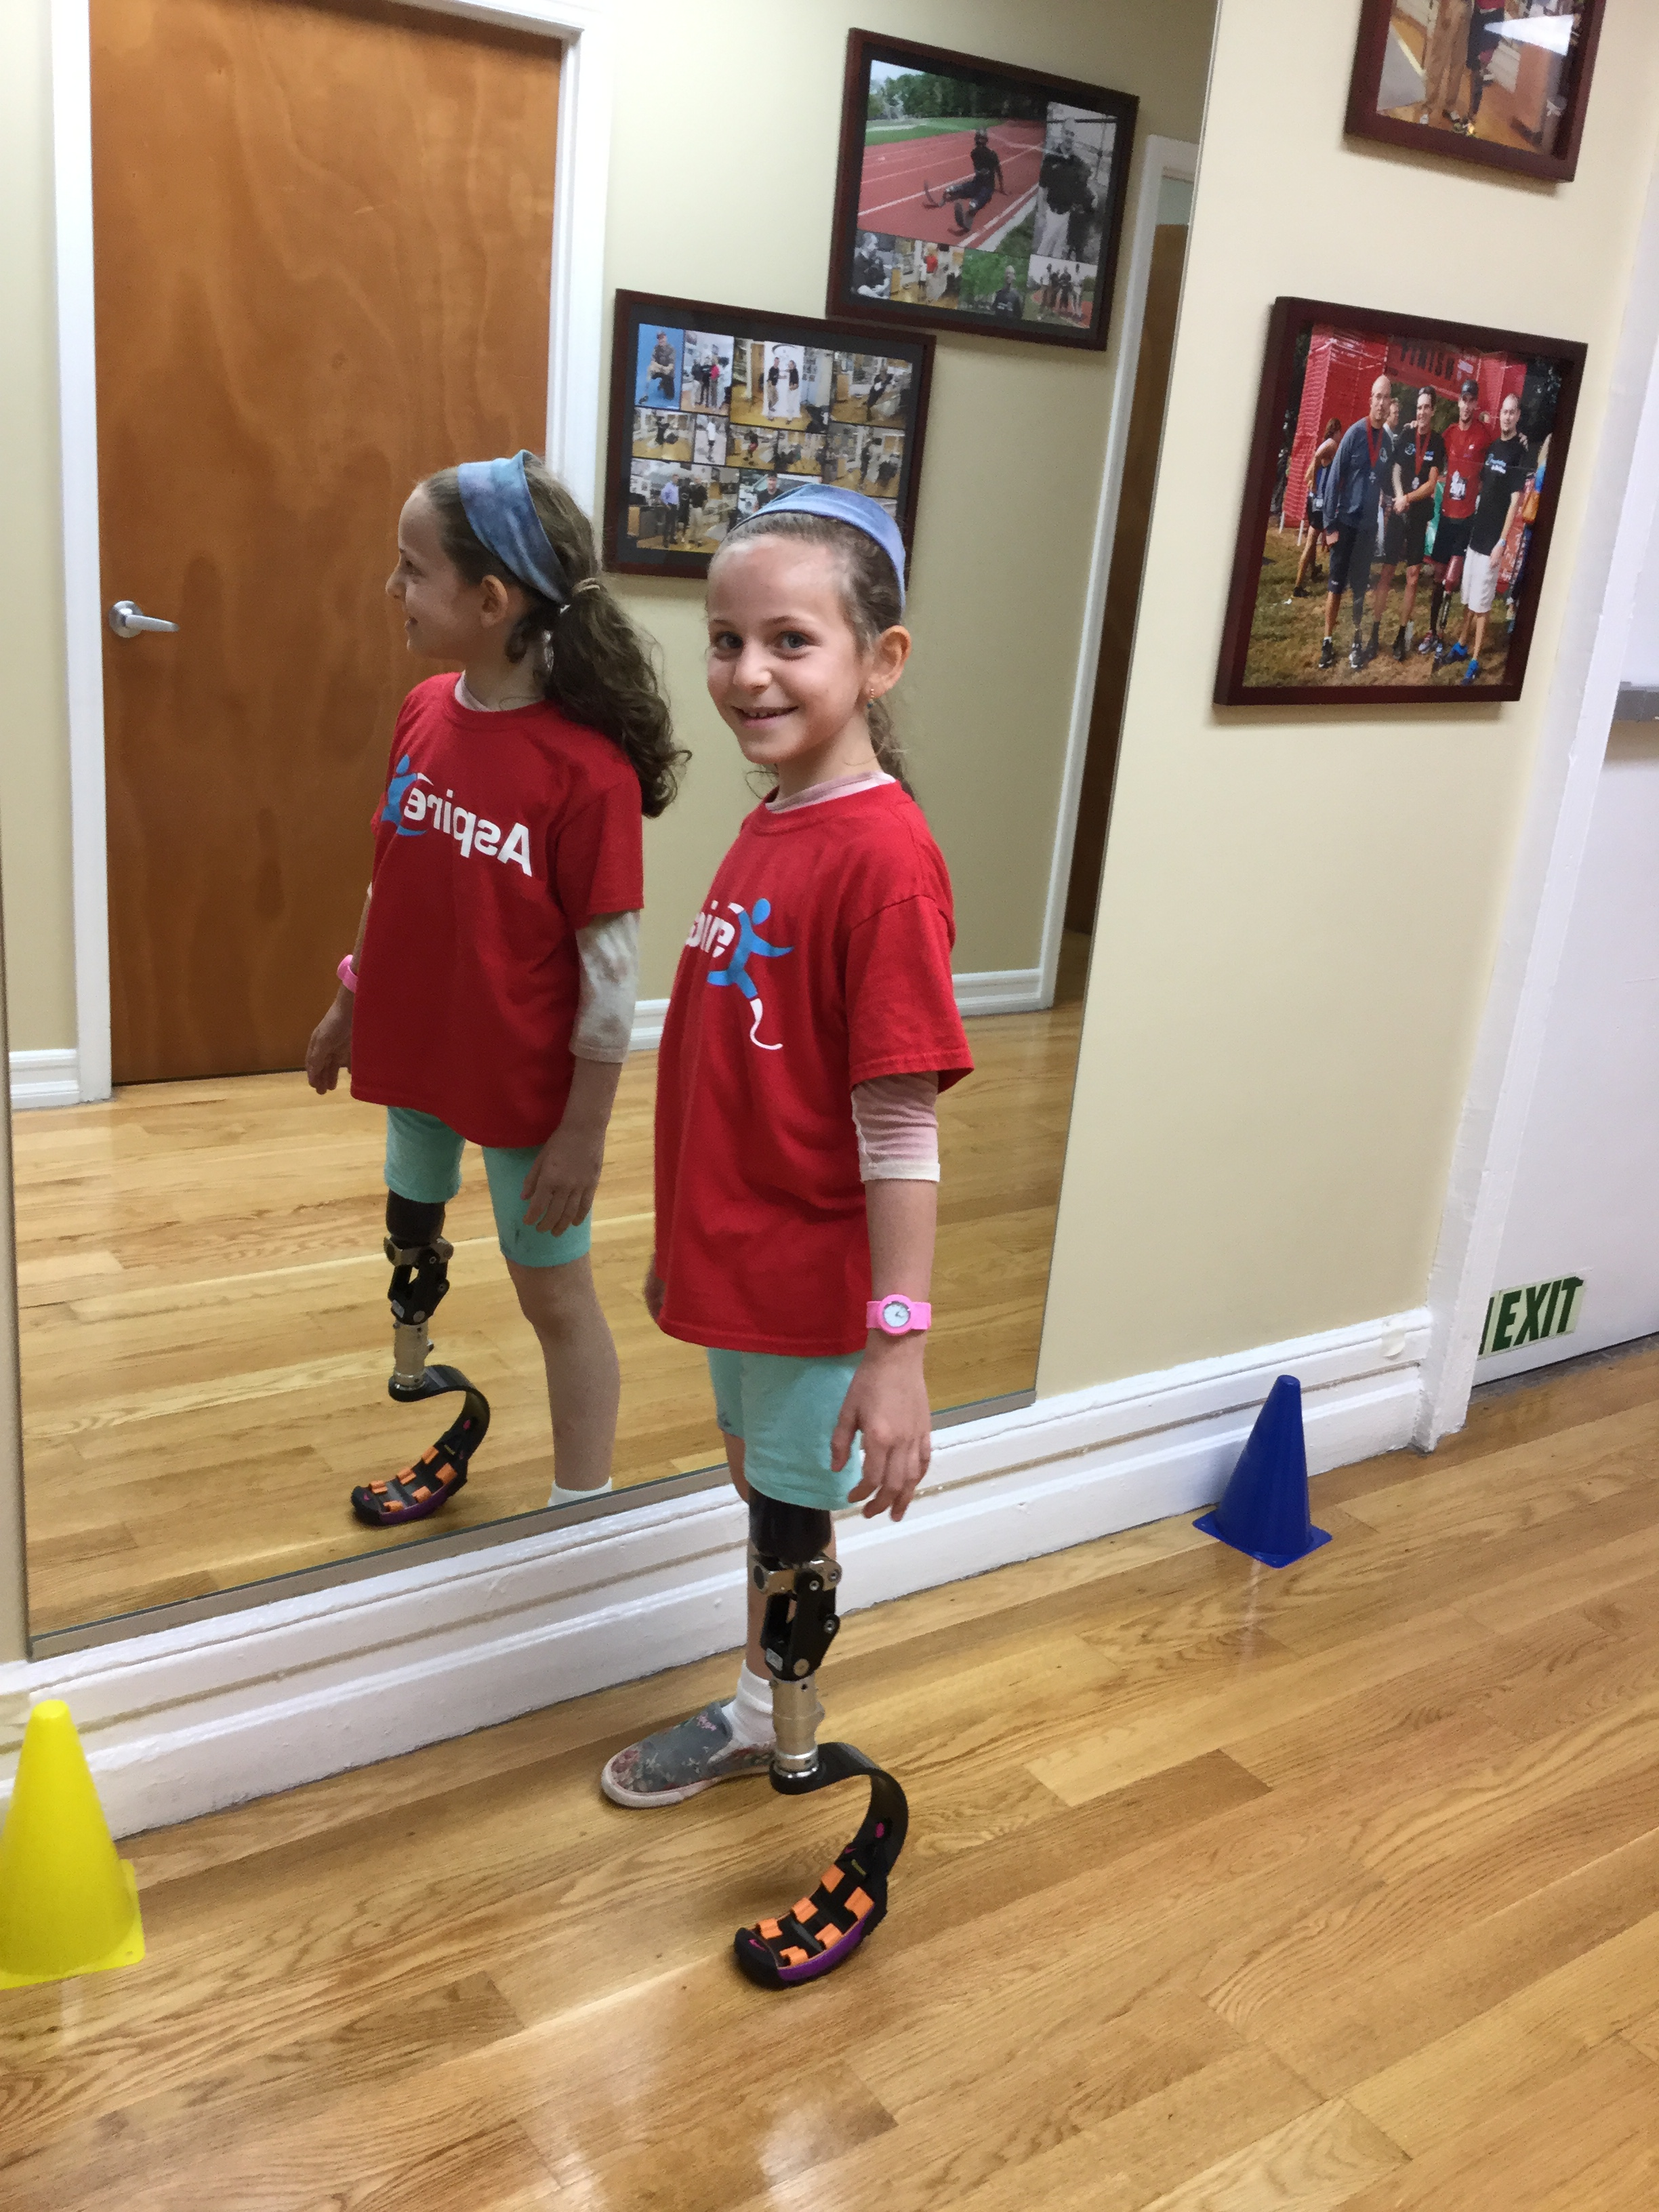 Since 1986 ASPIRE - has helped individuals with limb loss to grow physically and emotionally through programs